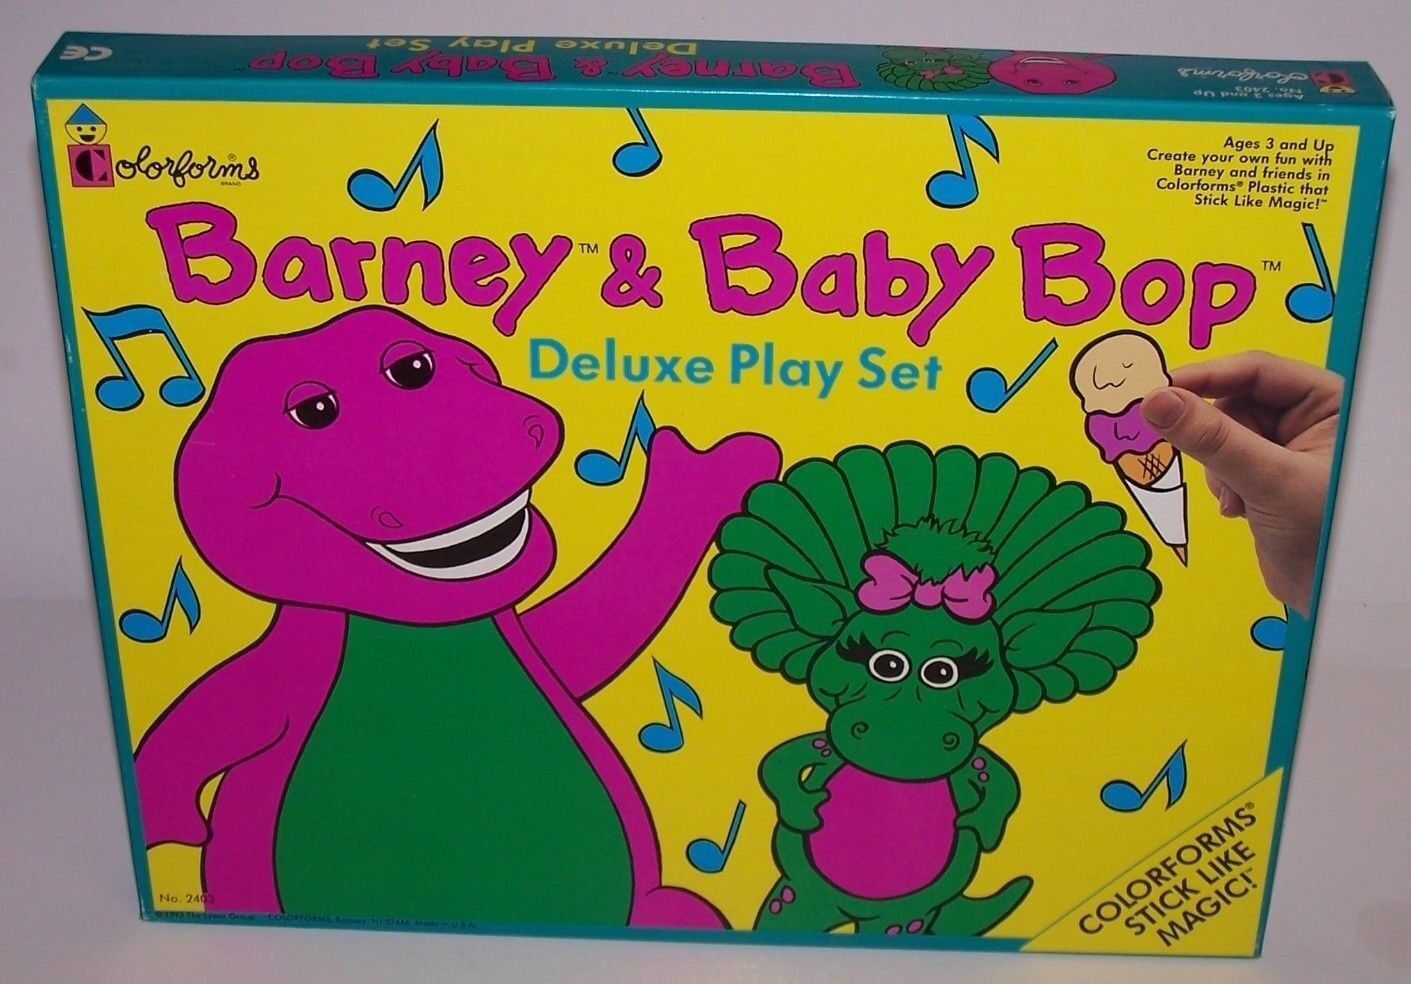 Barney & Baby Bop Rub N Deluxe Play Set colorforms Ages 3+ NIB